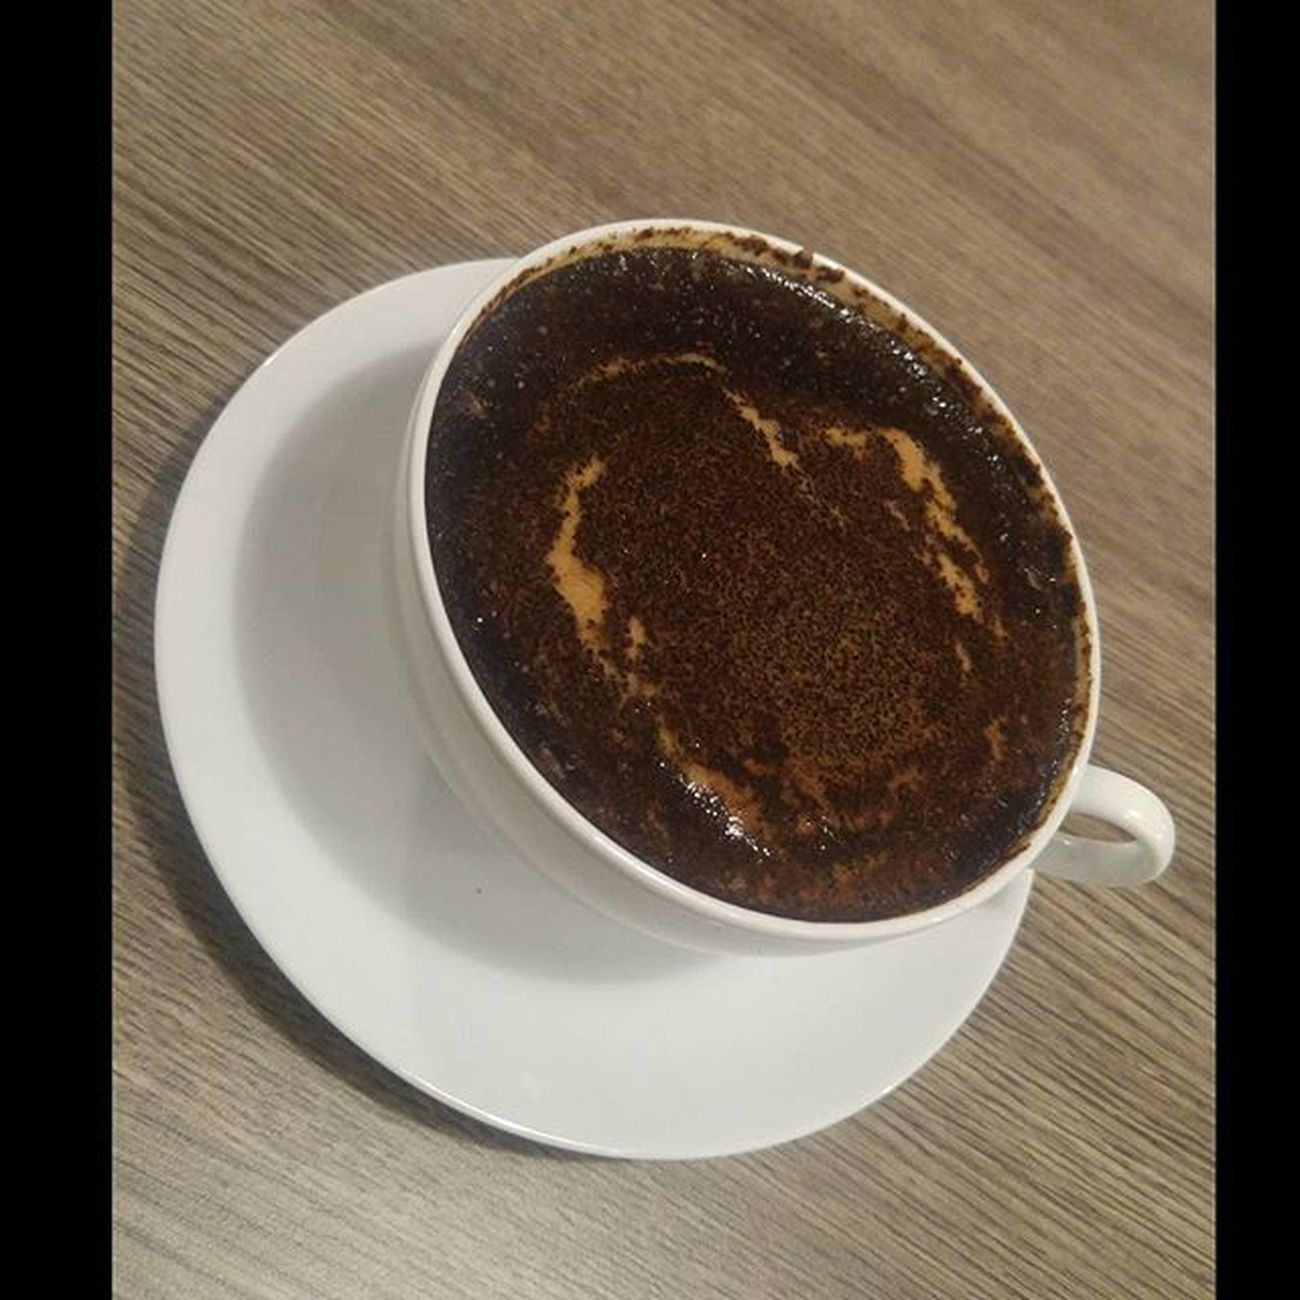 Testing coffee arabica from Tiom, wamena papua bean Kopitubruk Coffee Coffeetime Blackcoffee Coffeesesh Lcbbandung Val  2016 LGG4 LG  G4 ☕